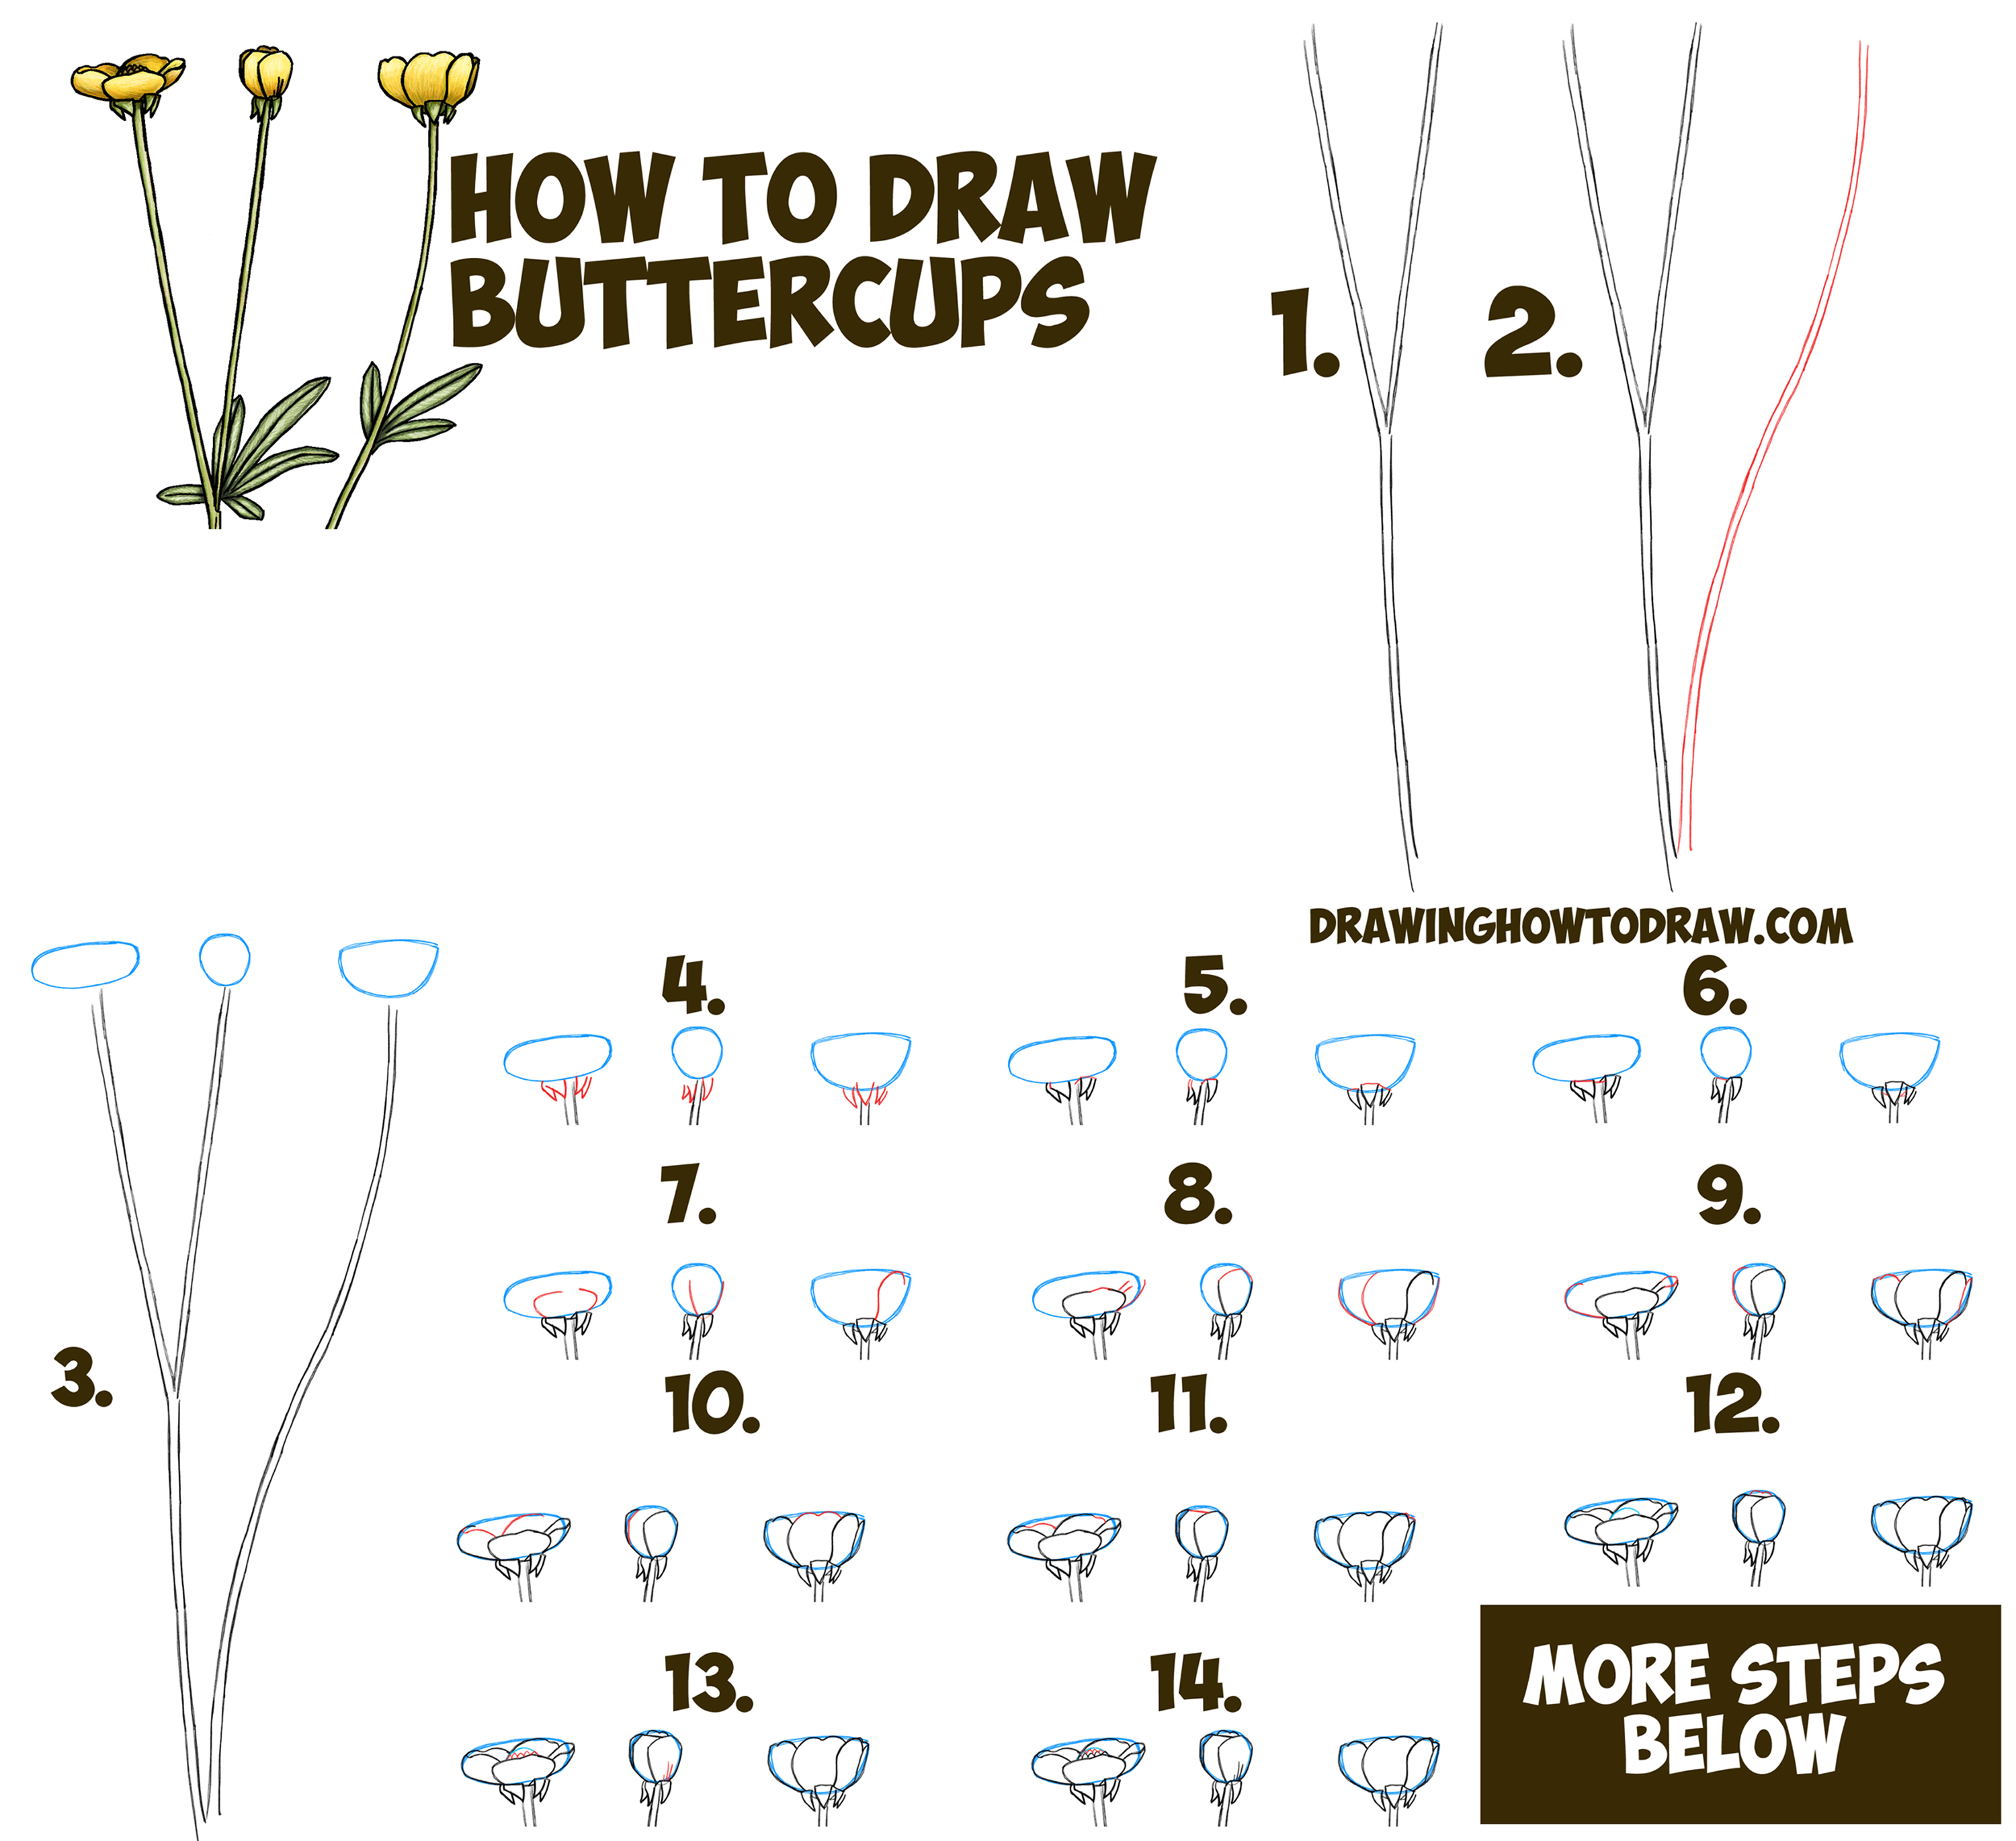 How To Draw A Buttercup Flower Step By Step Drawing Tutorial Buttercups Easy For Beginners How To Draw Step By Step Drawing Tutorials